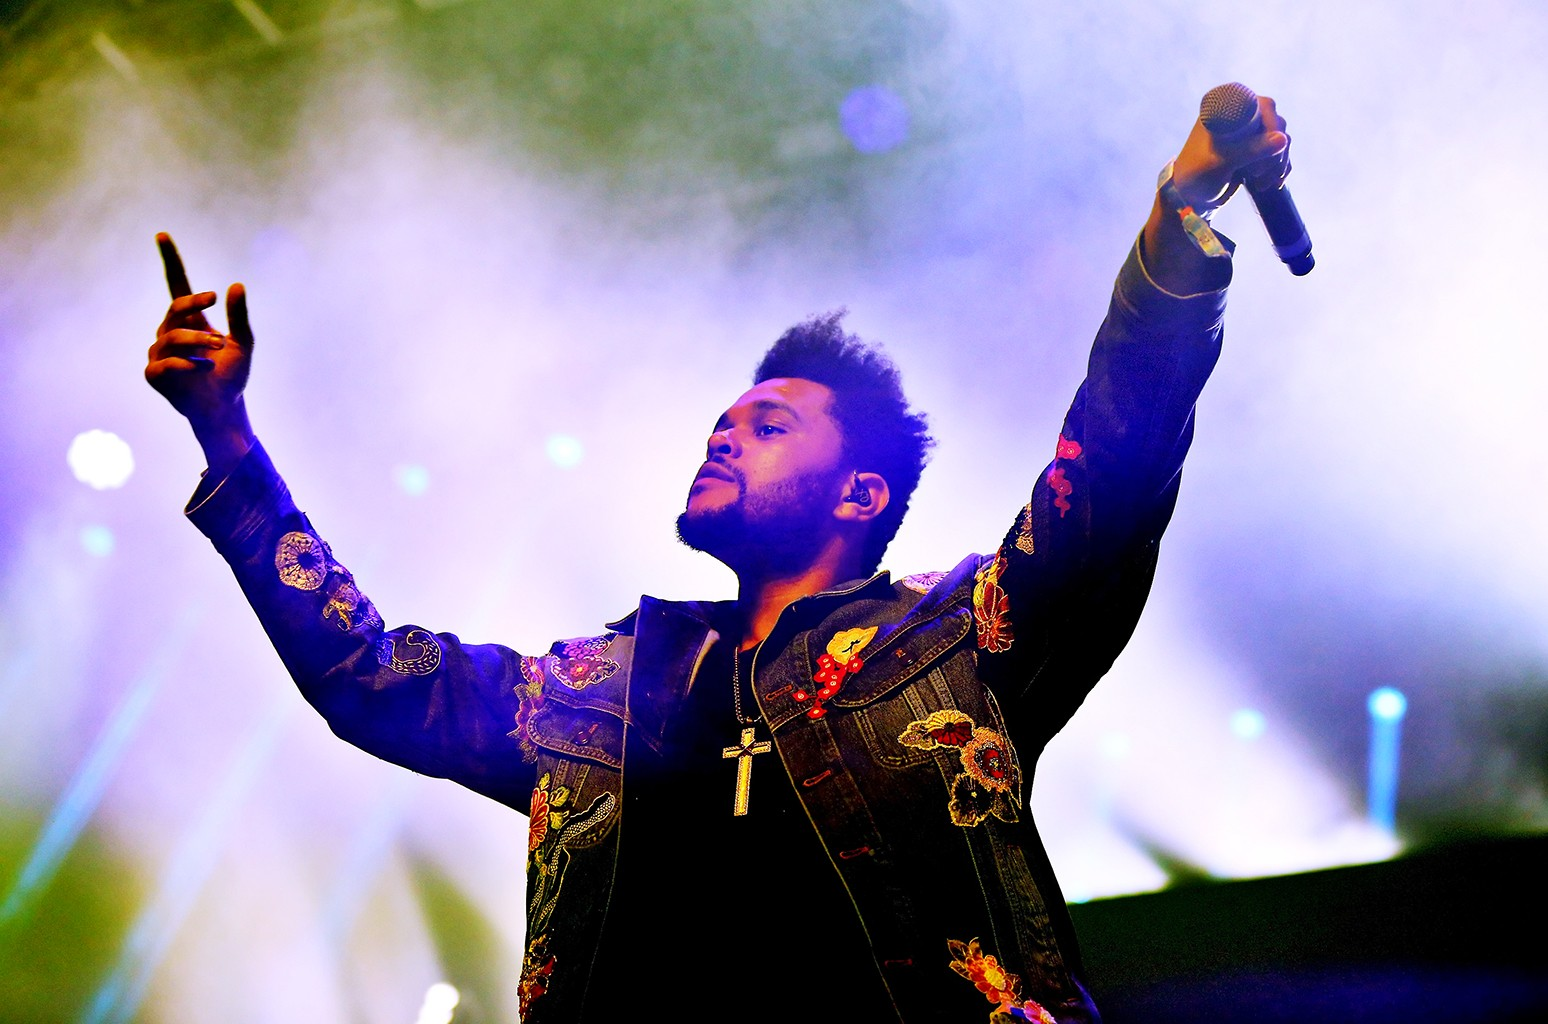 The Weeknd performs onstage at the Gobi tent during day 2 of the Coachella Valley Music And Arts Festival at Empire Polo Club on April 15, 2017 in Indio, Calif.